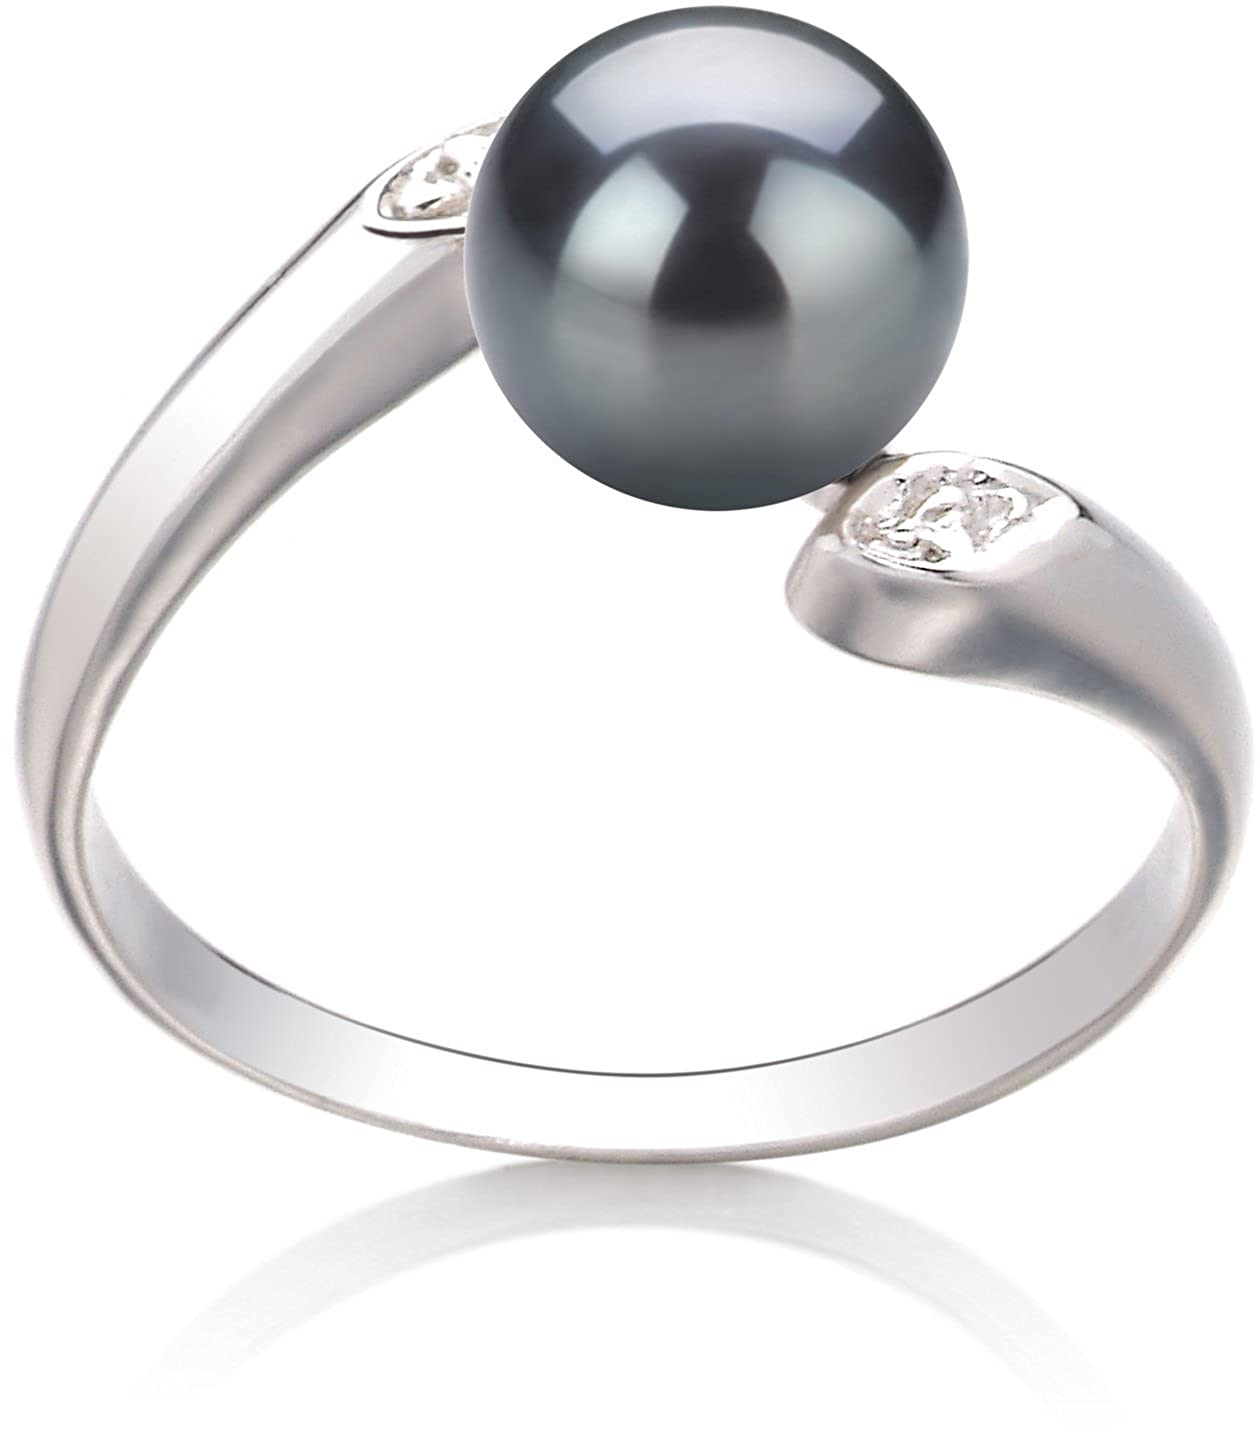 Dana Black 6-7mm AAA Quality Freshwater 925 Sterling Silver Cultured Pearl Ring PearlsOnly